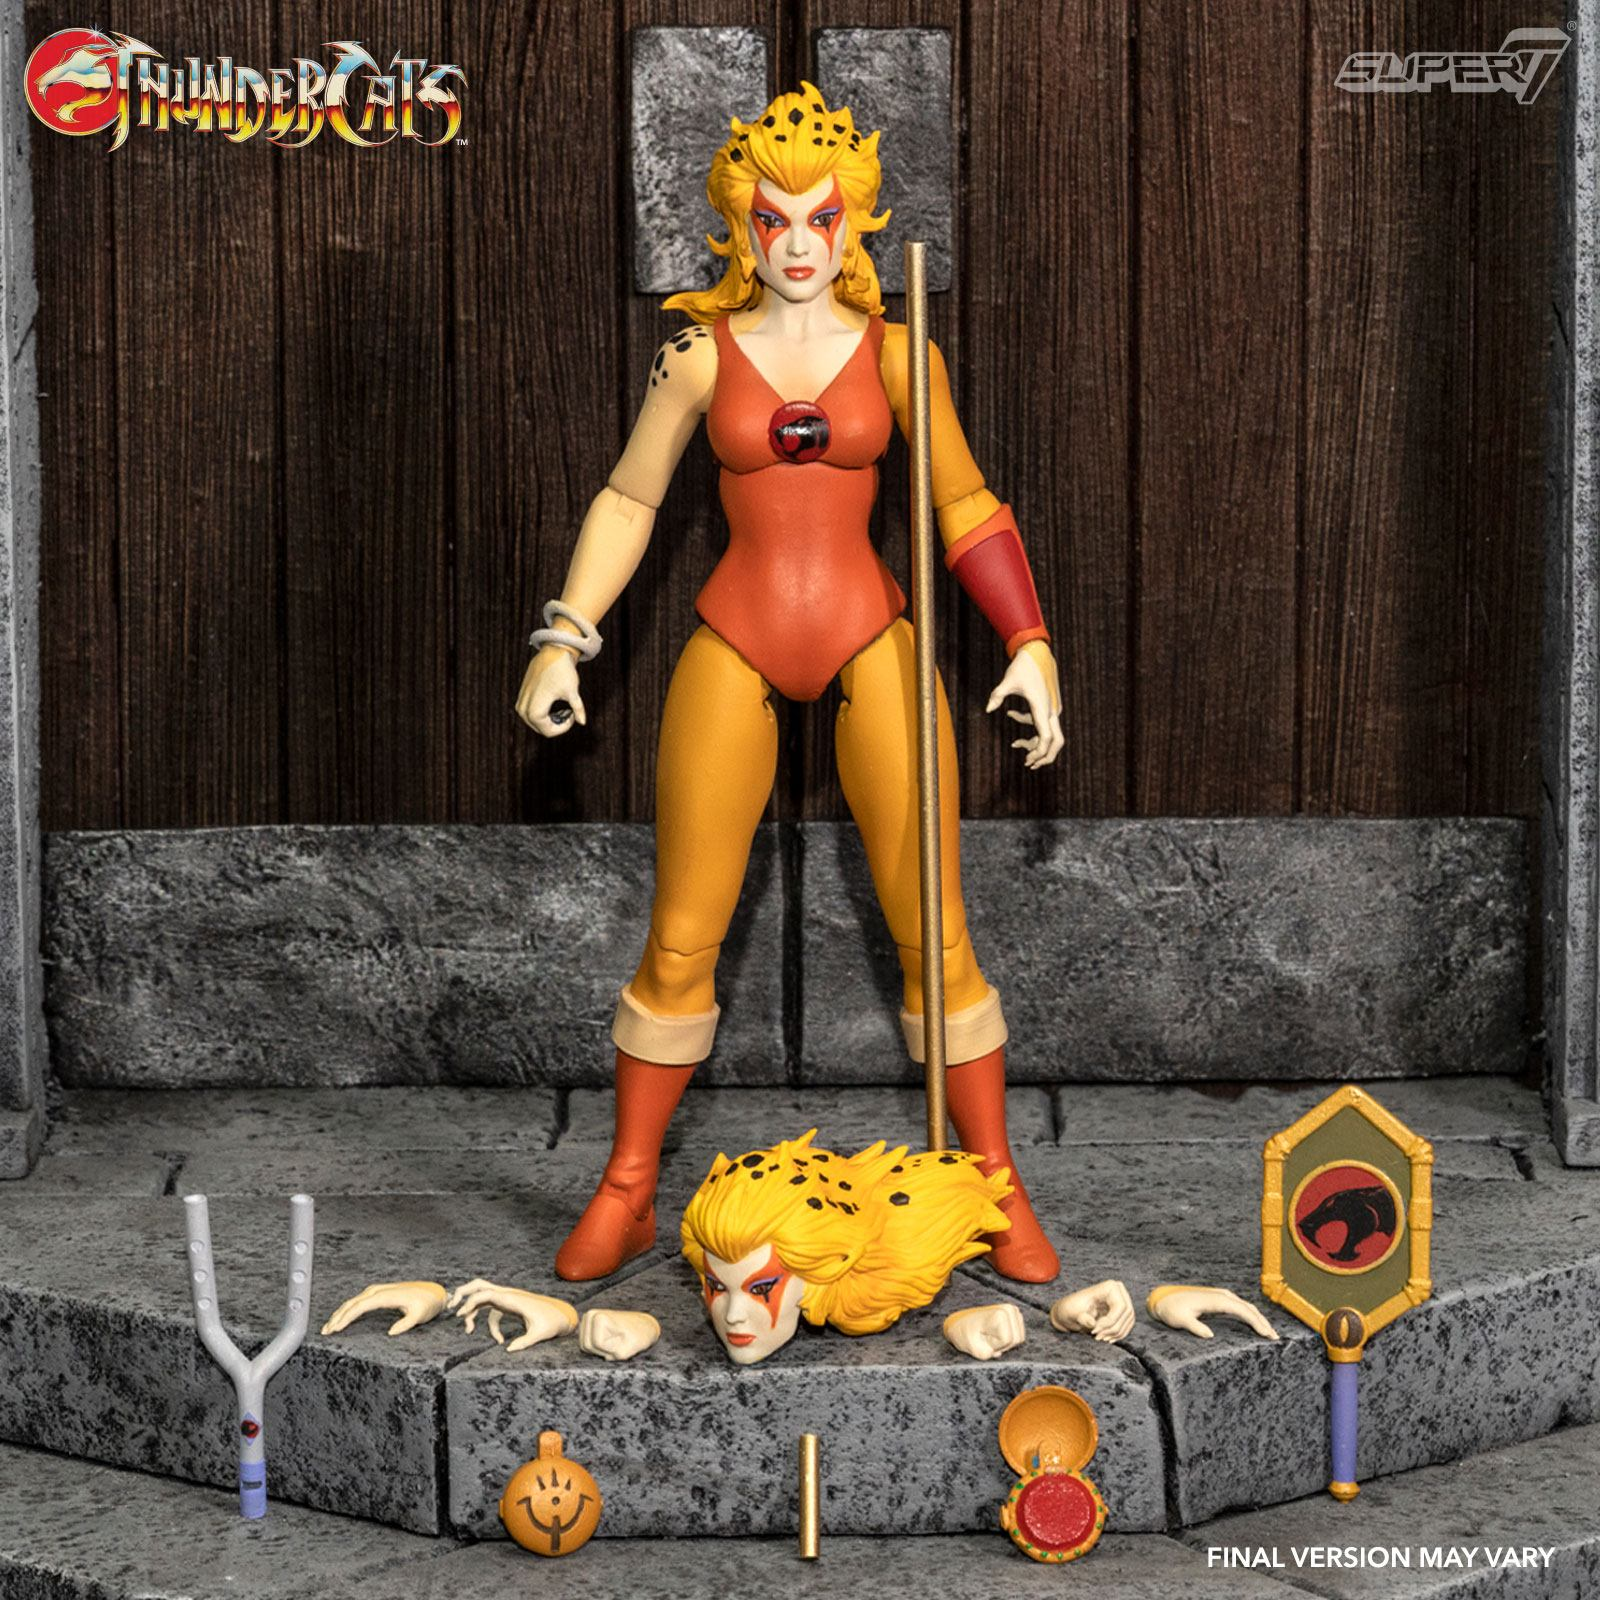 Thundercats Ultimates Action Figure Wave 3 Cheetara the Super Speedy Thundercats Warrior 18 cm